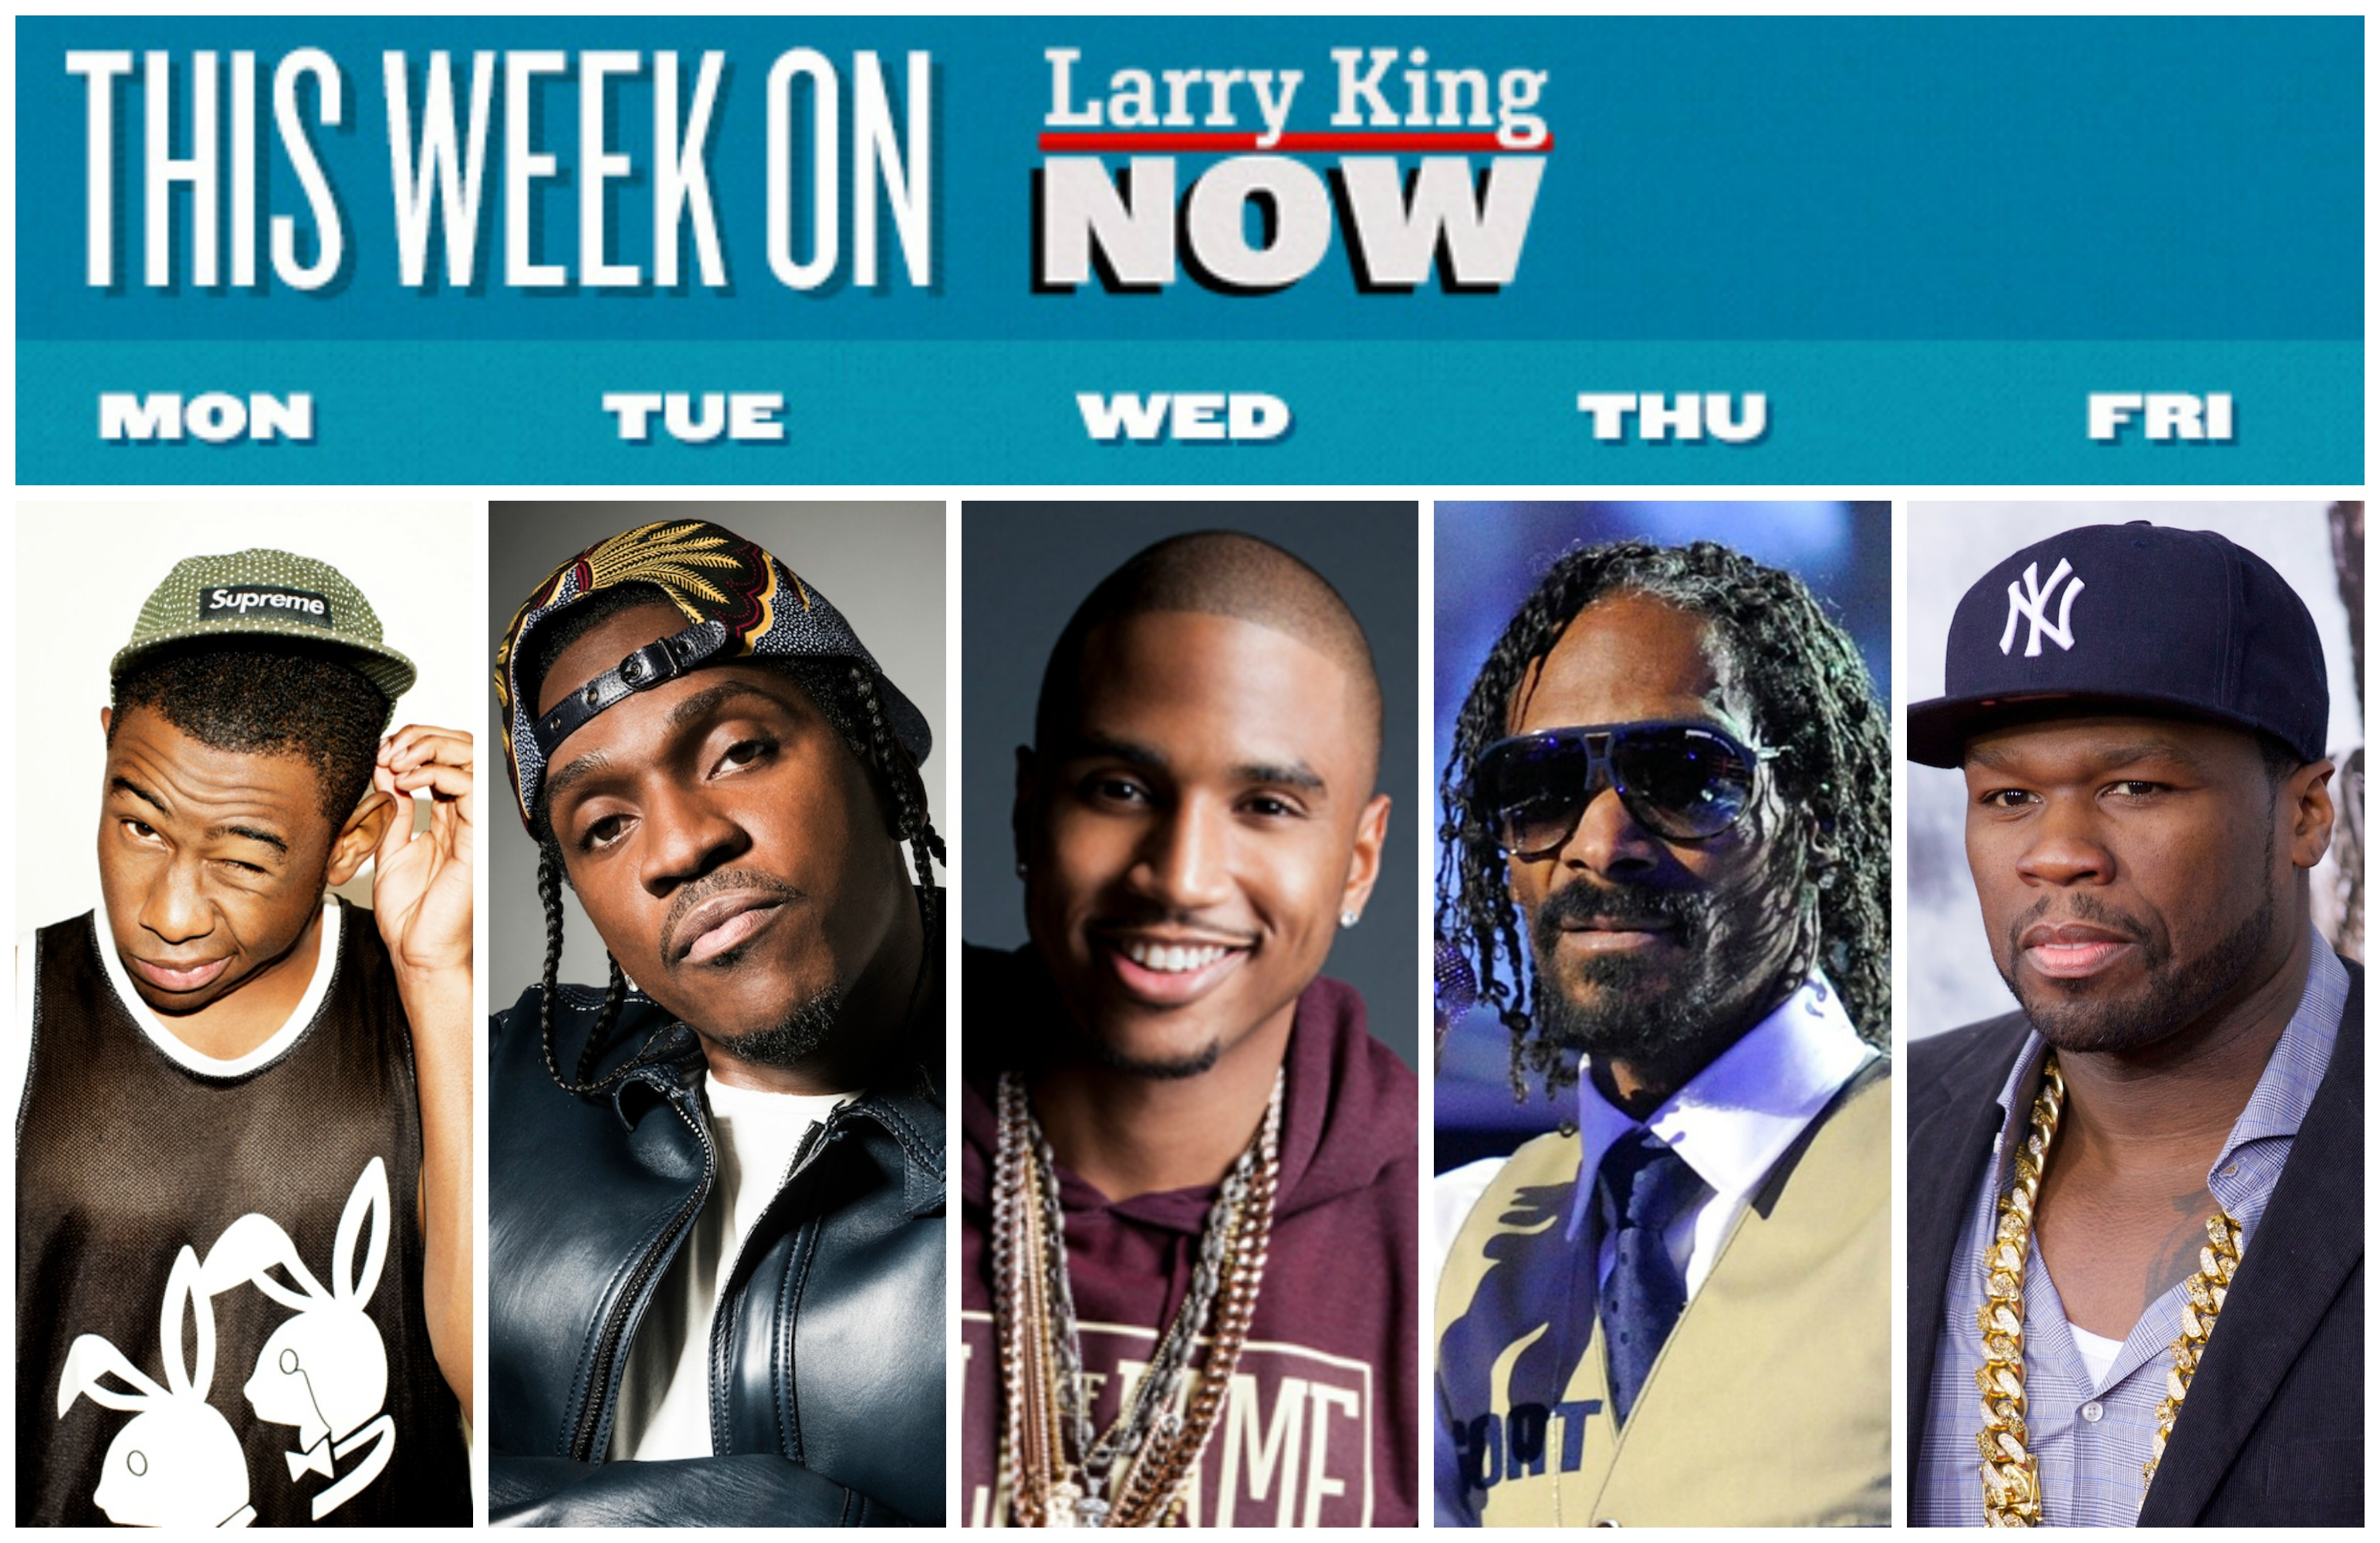 Hip Hop Week on 'Larry King Now' with Tyler the Creator, Pusha T, Trey Songz, Snoop Lion, Snoop Dog, 50 Cent